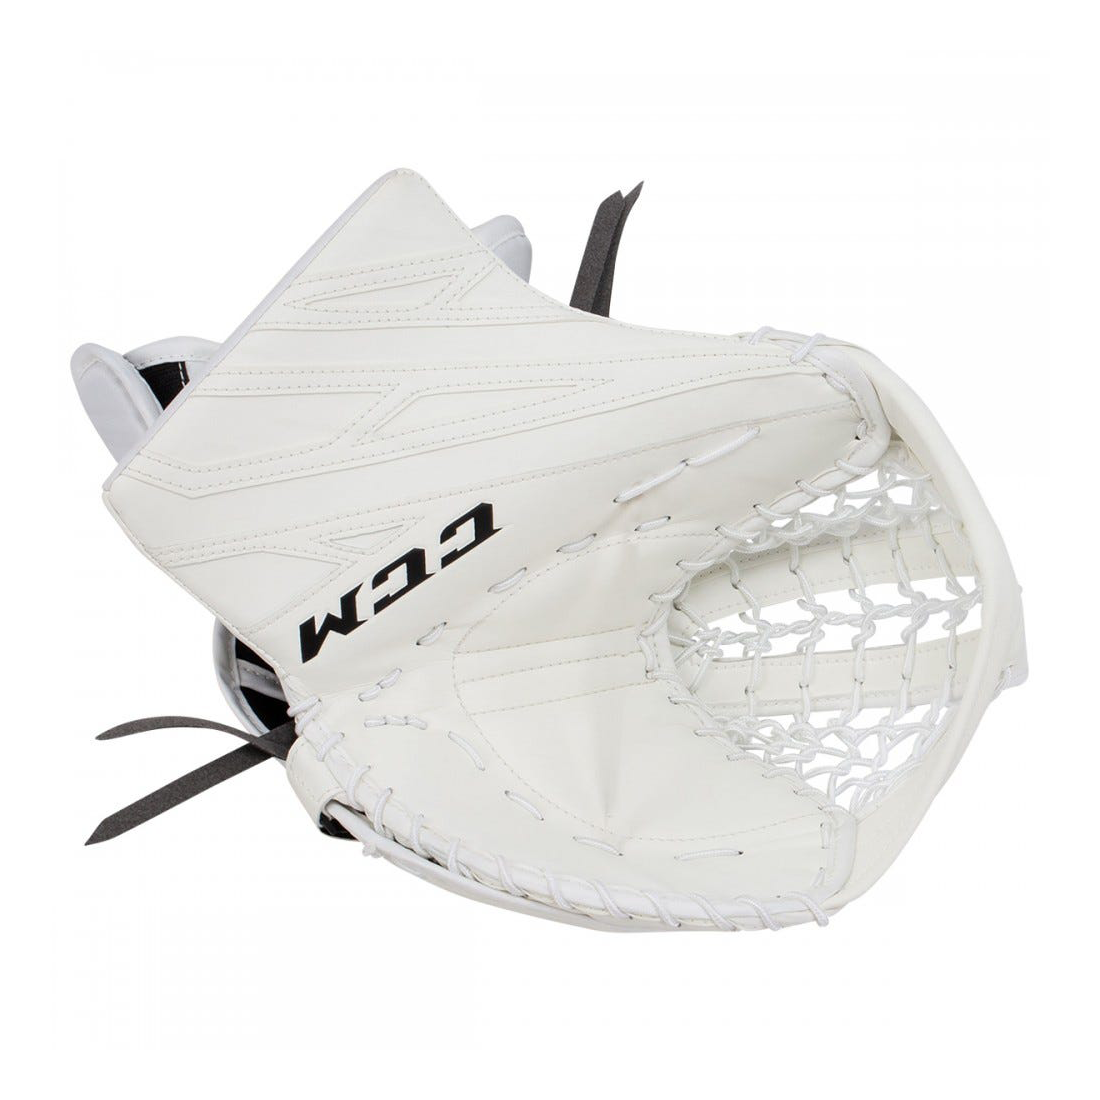 GME4.5 JR CCM EFX Prot Goalie Catcher White